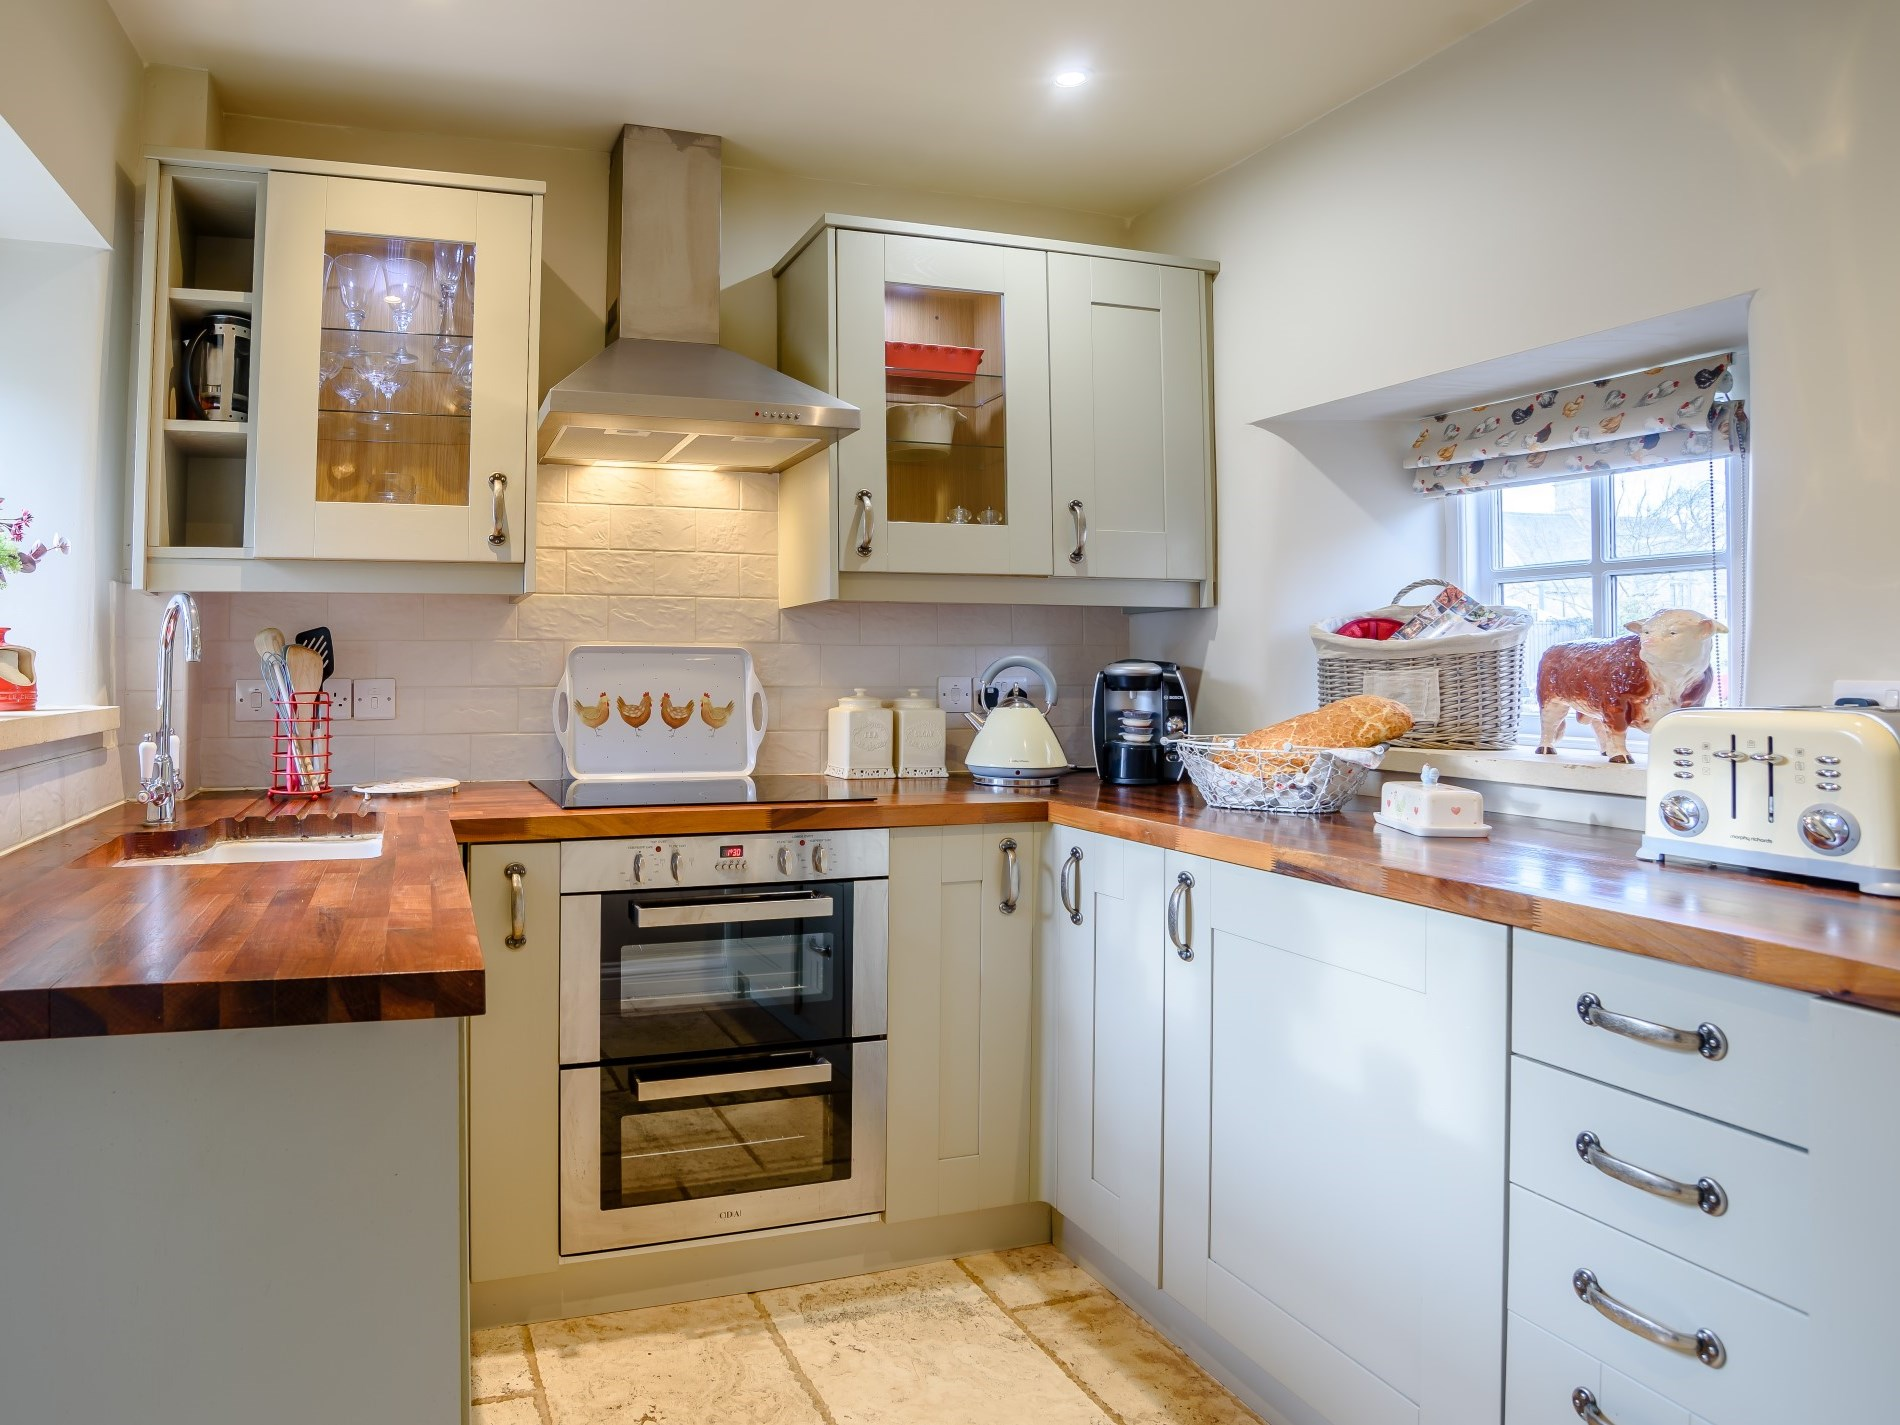 1 Bedroom Cottage in Gloucestershire, Heart of England